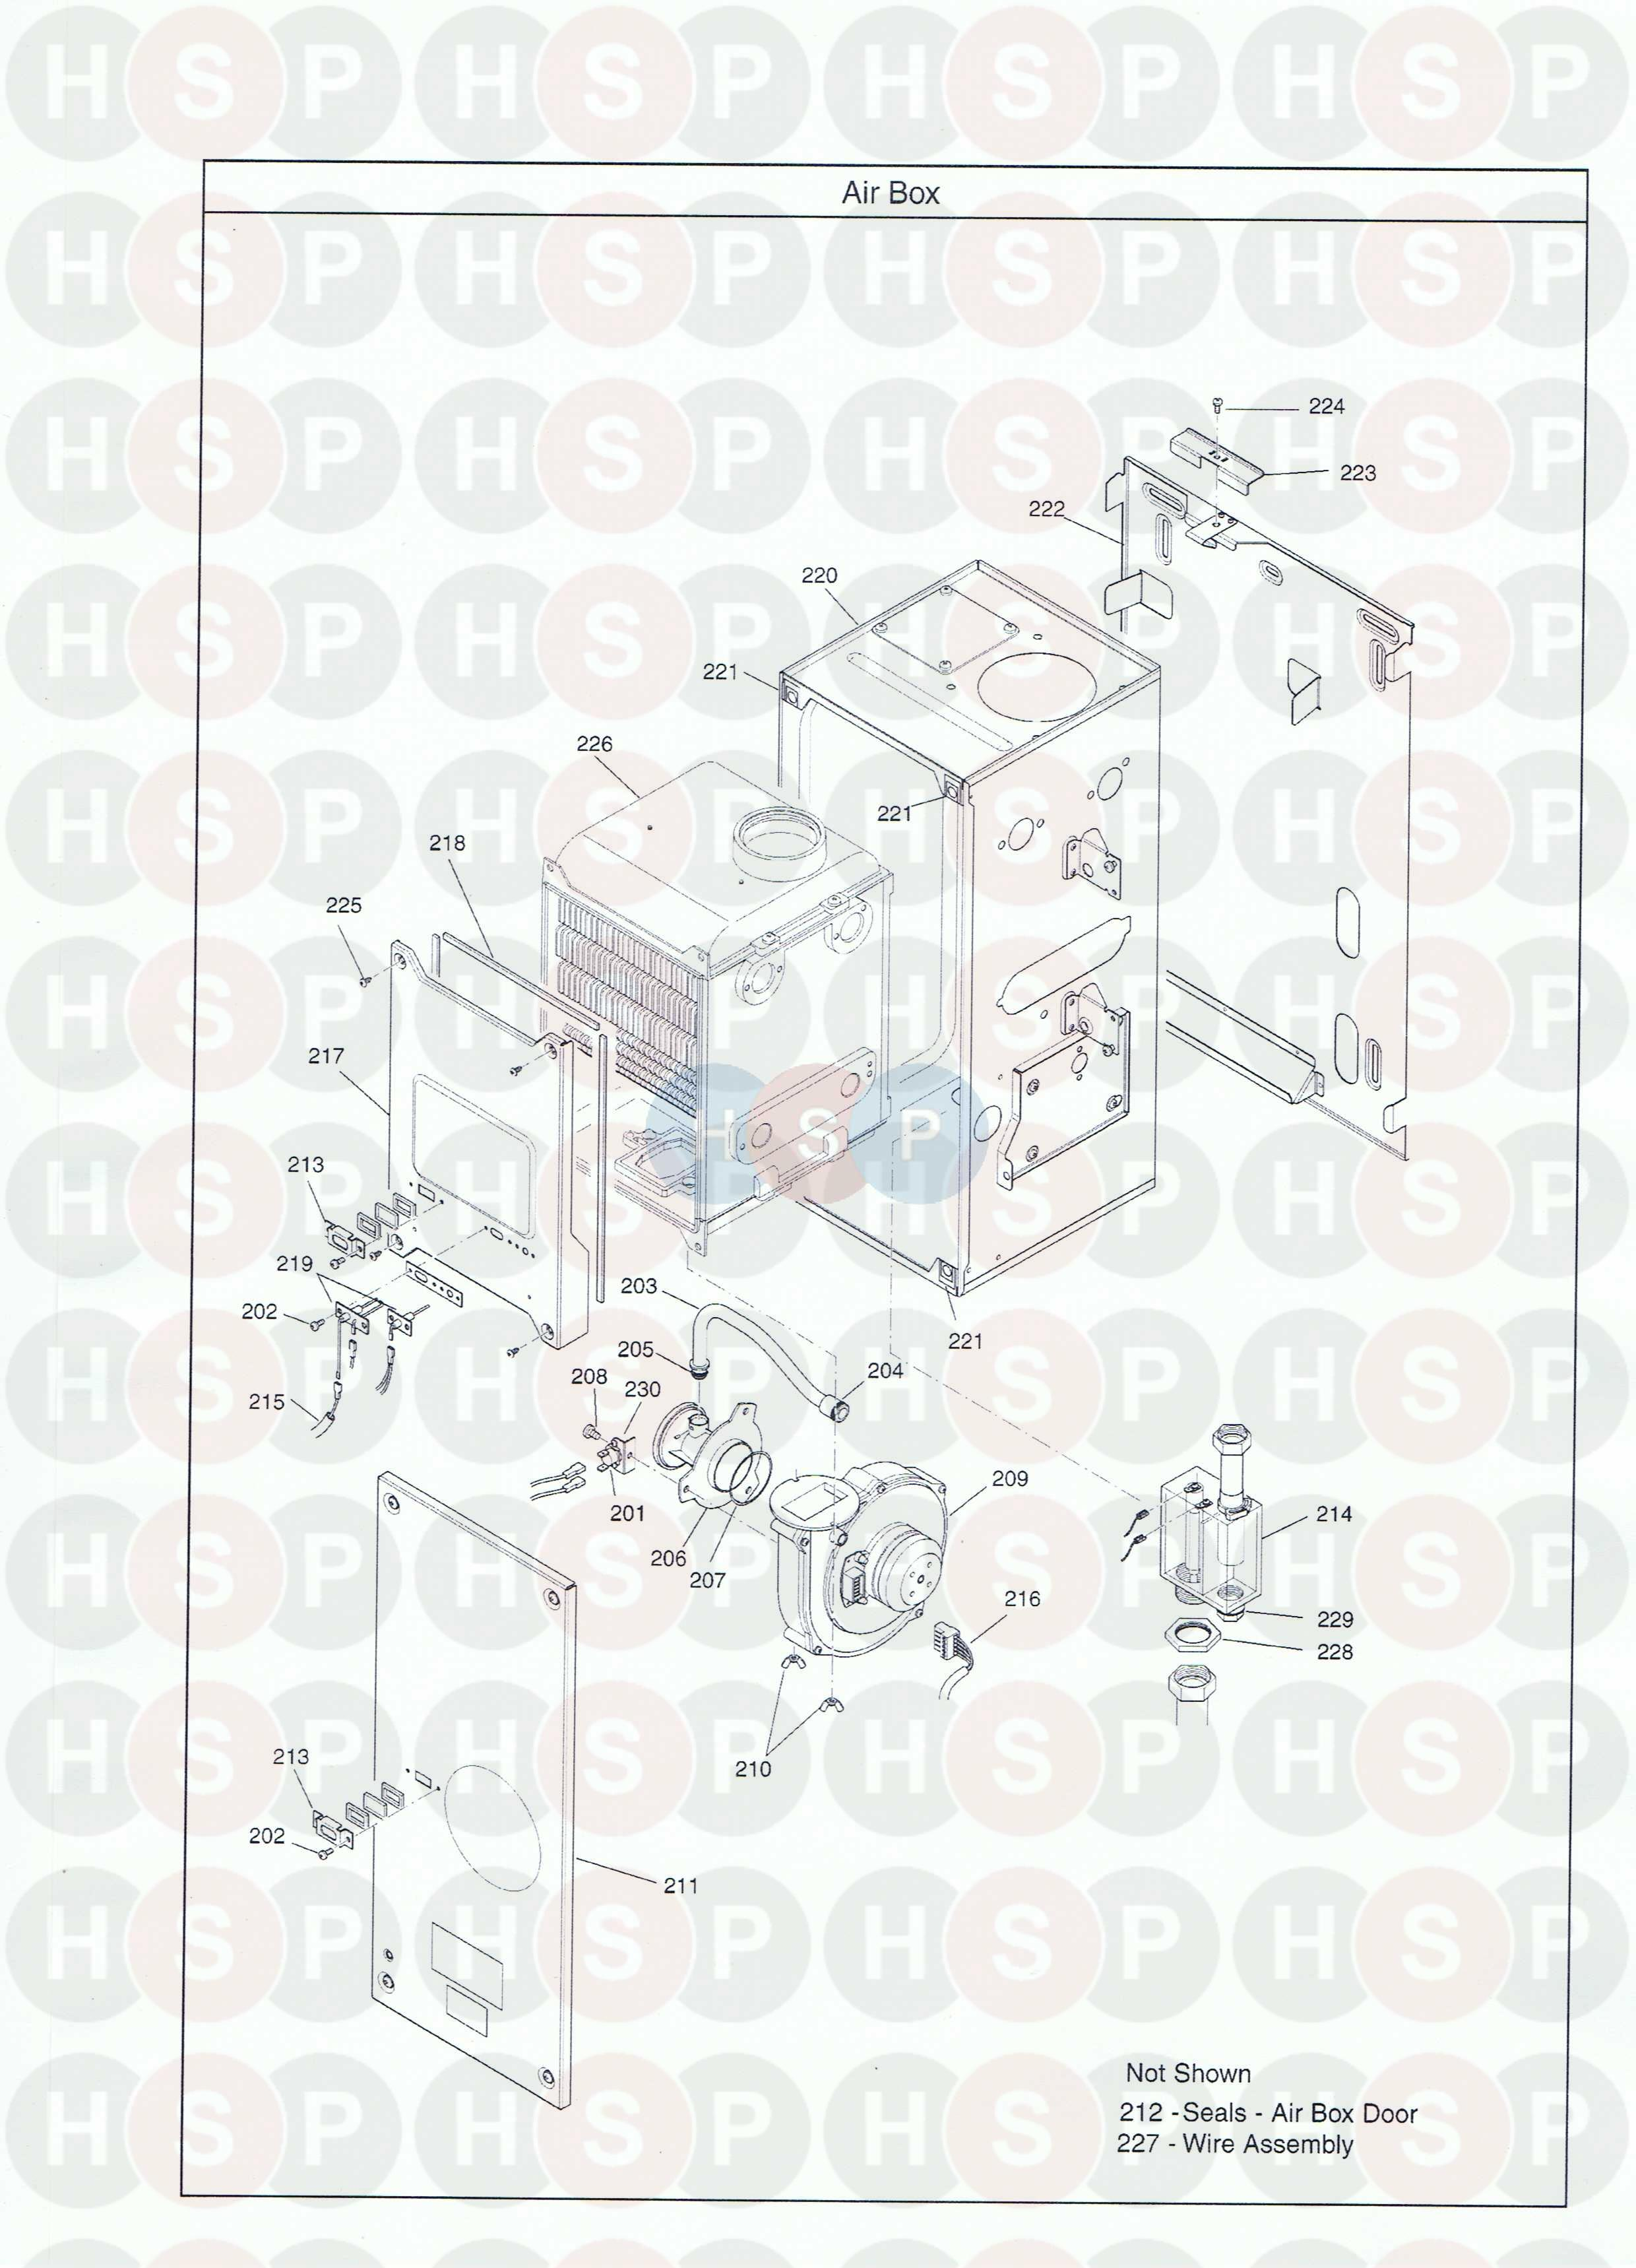 Combustion Box diagram for Baxi 50/2 HE PLUS